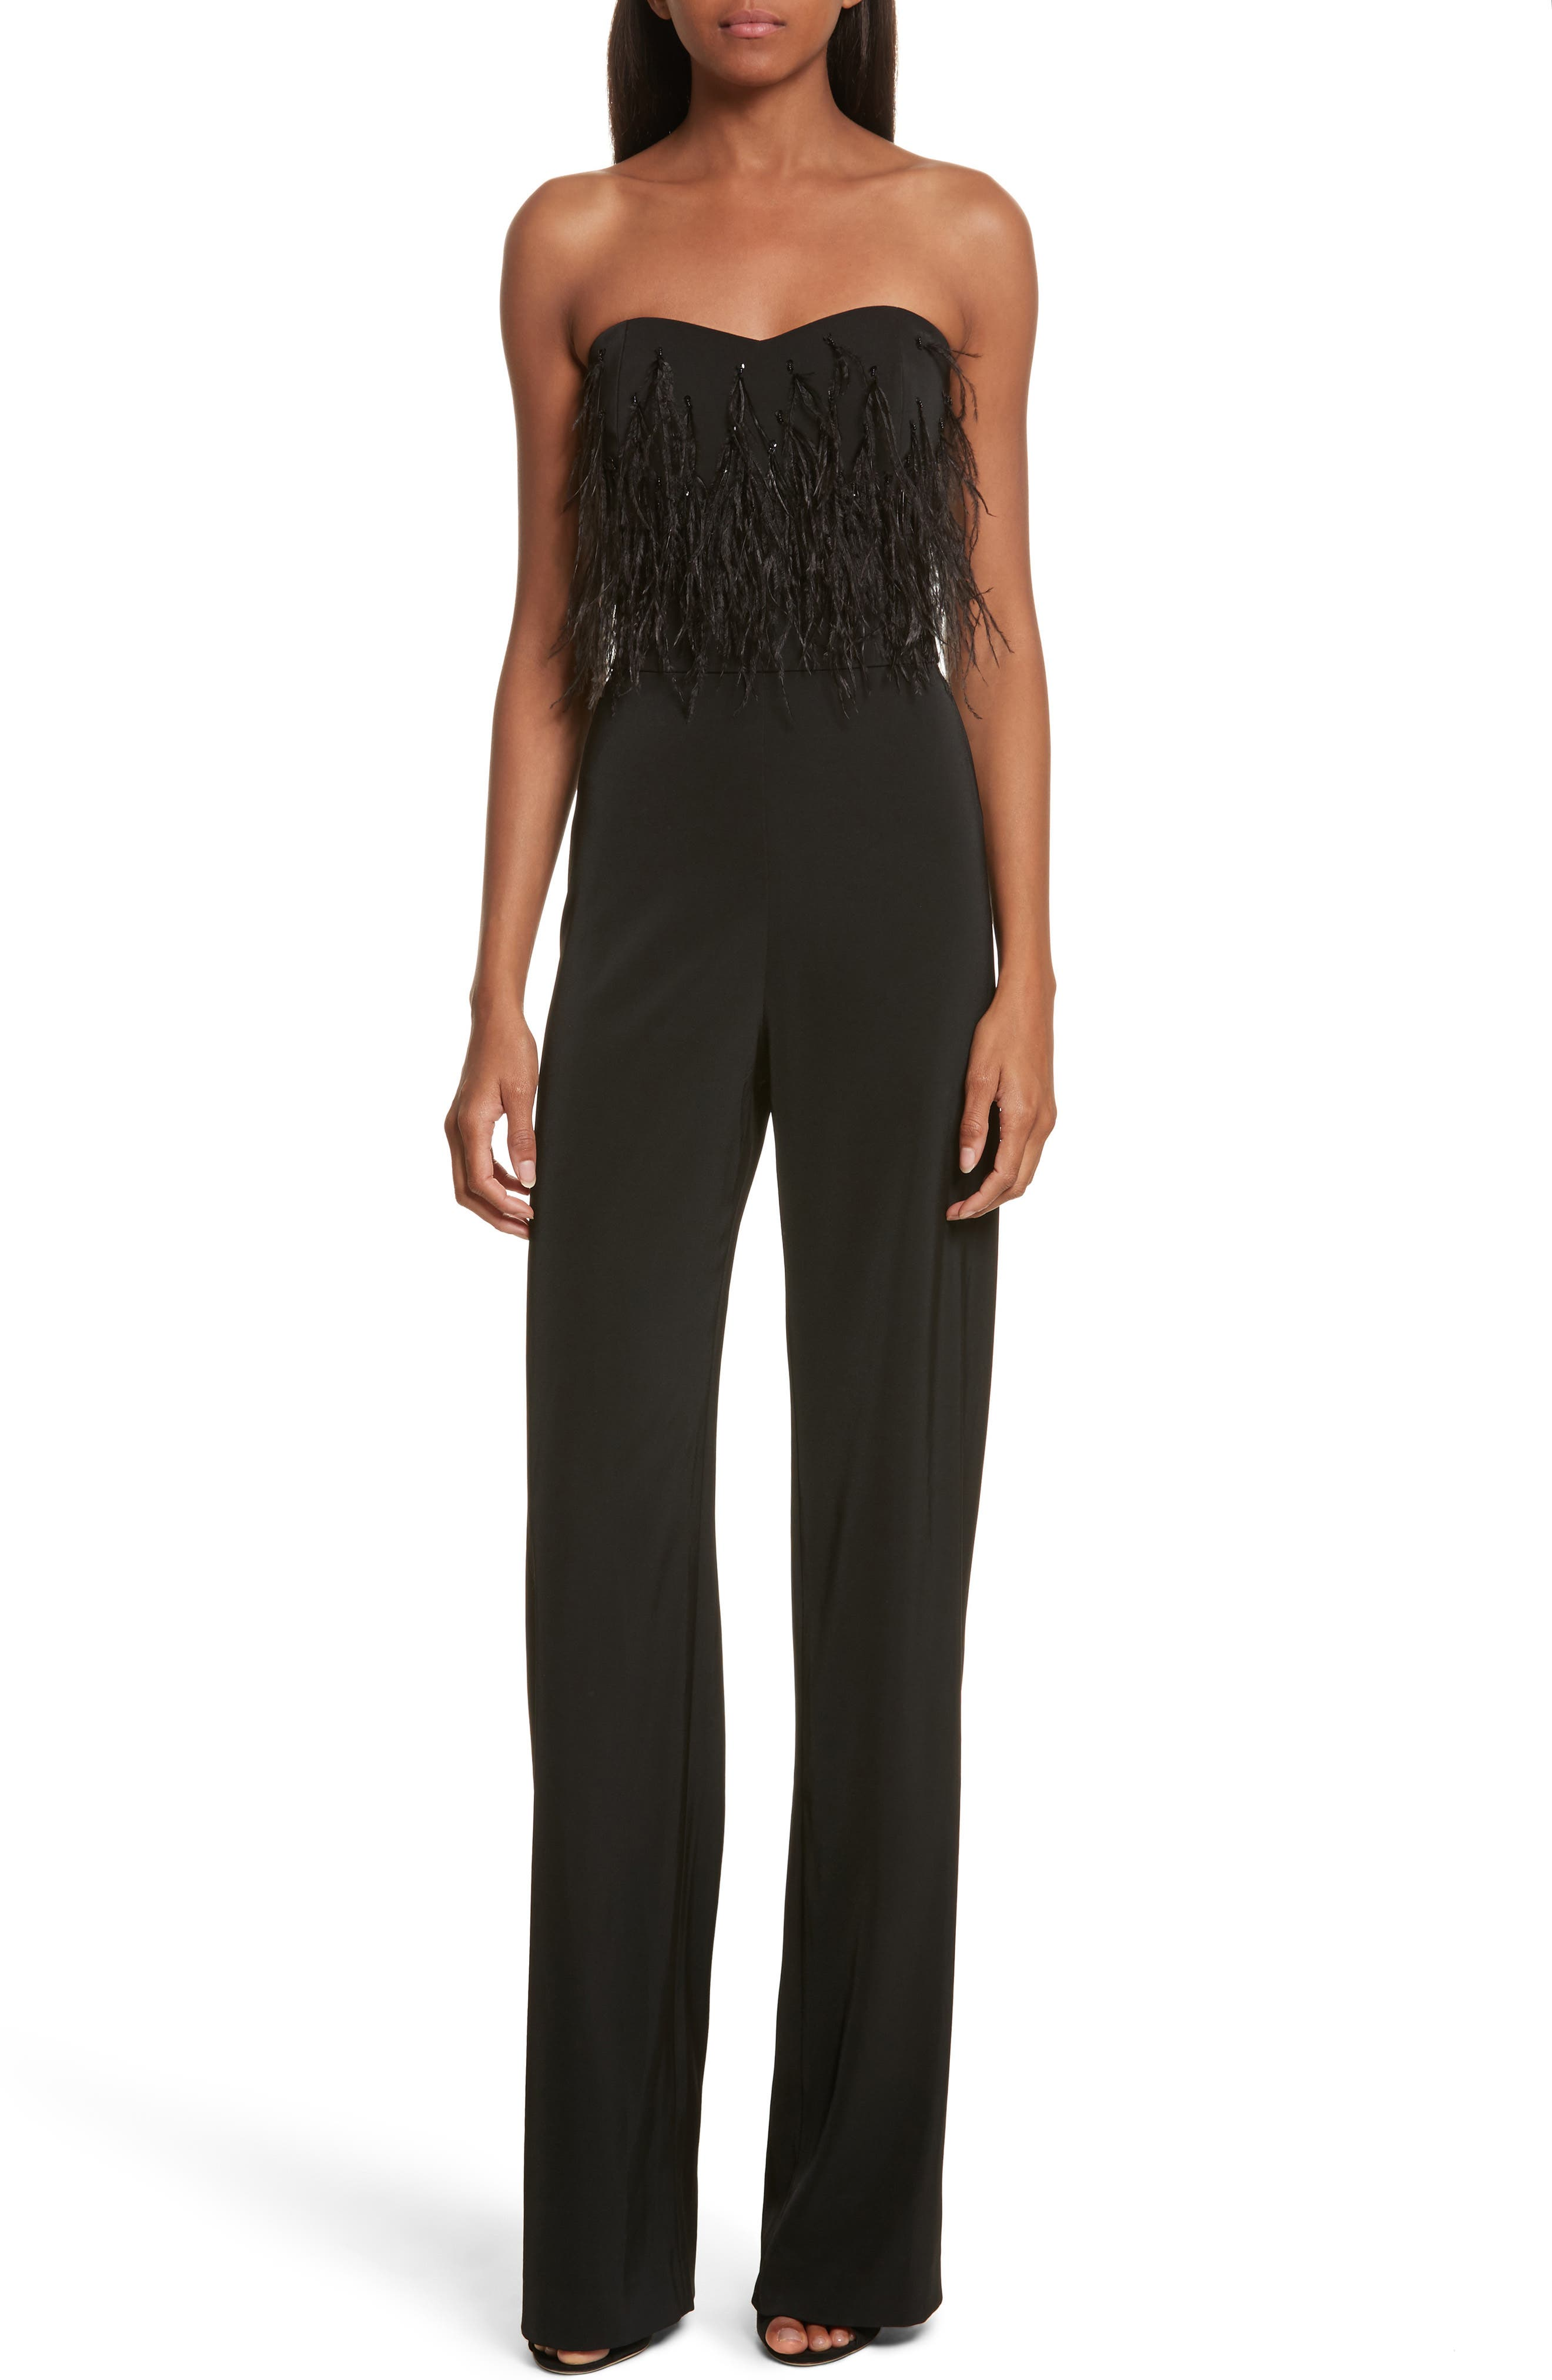 Faux Feather Trim Satin Backed Crepe Strapless Jumpsuit,                             Main thumbnail 1, color,                             Black Feather